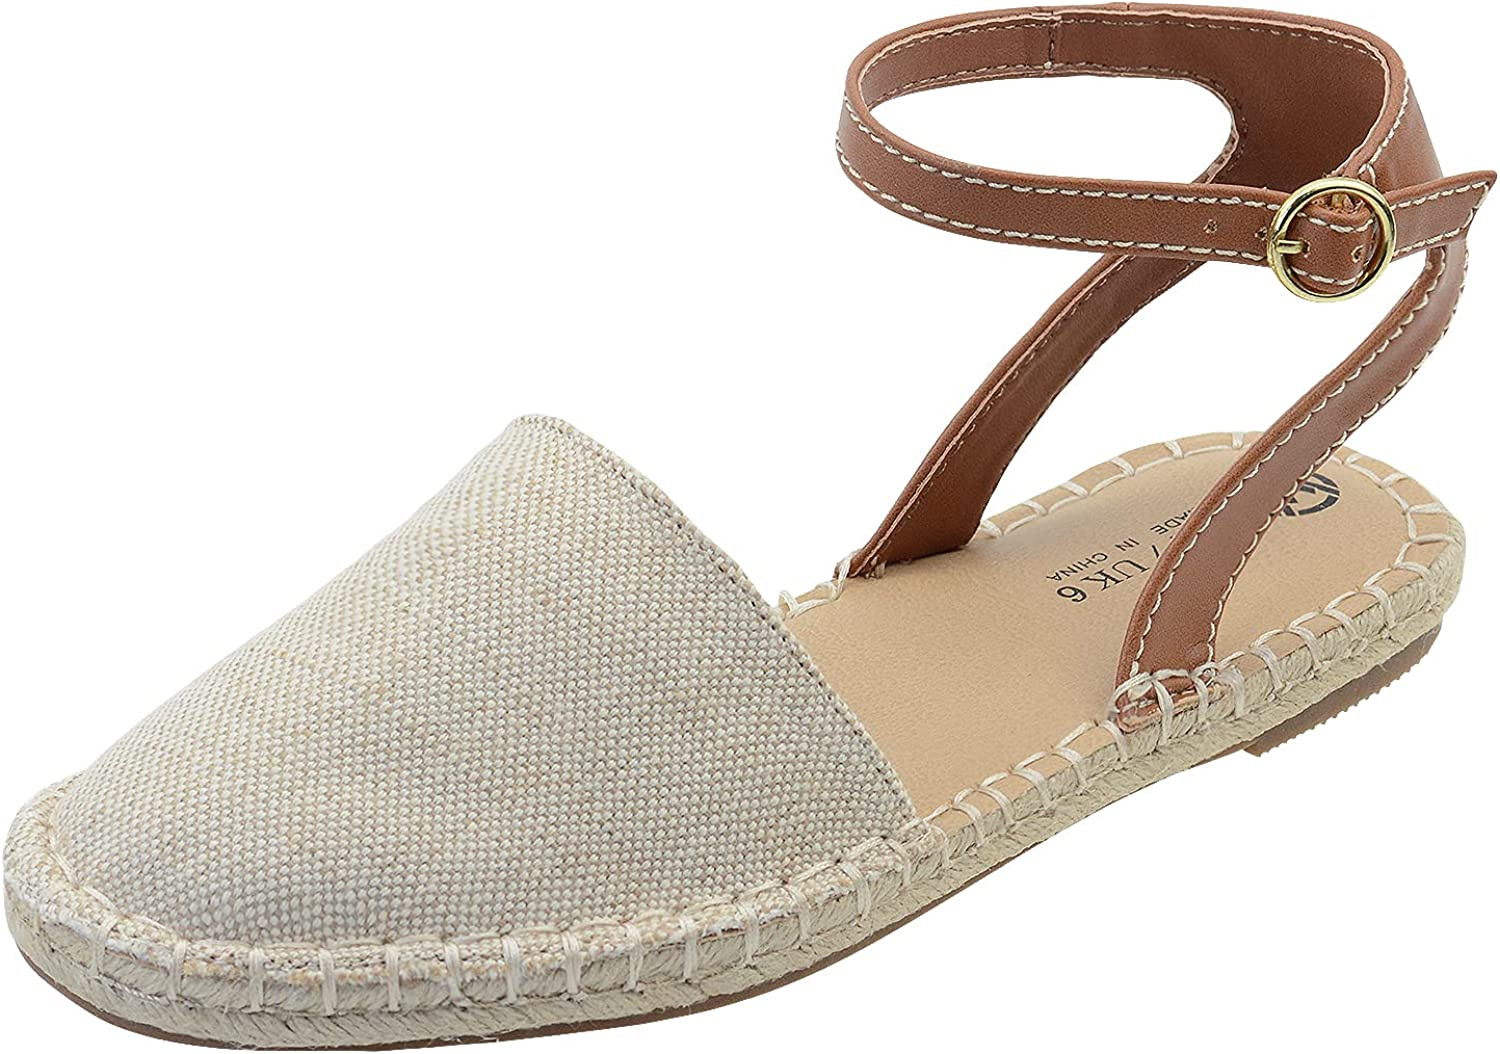 FIBURE Women's Classic Sandals Espadrille Flat with Ankle Adjustable Buckle Closed Toe Breathable Dress Shoe